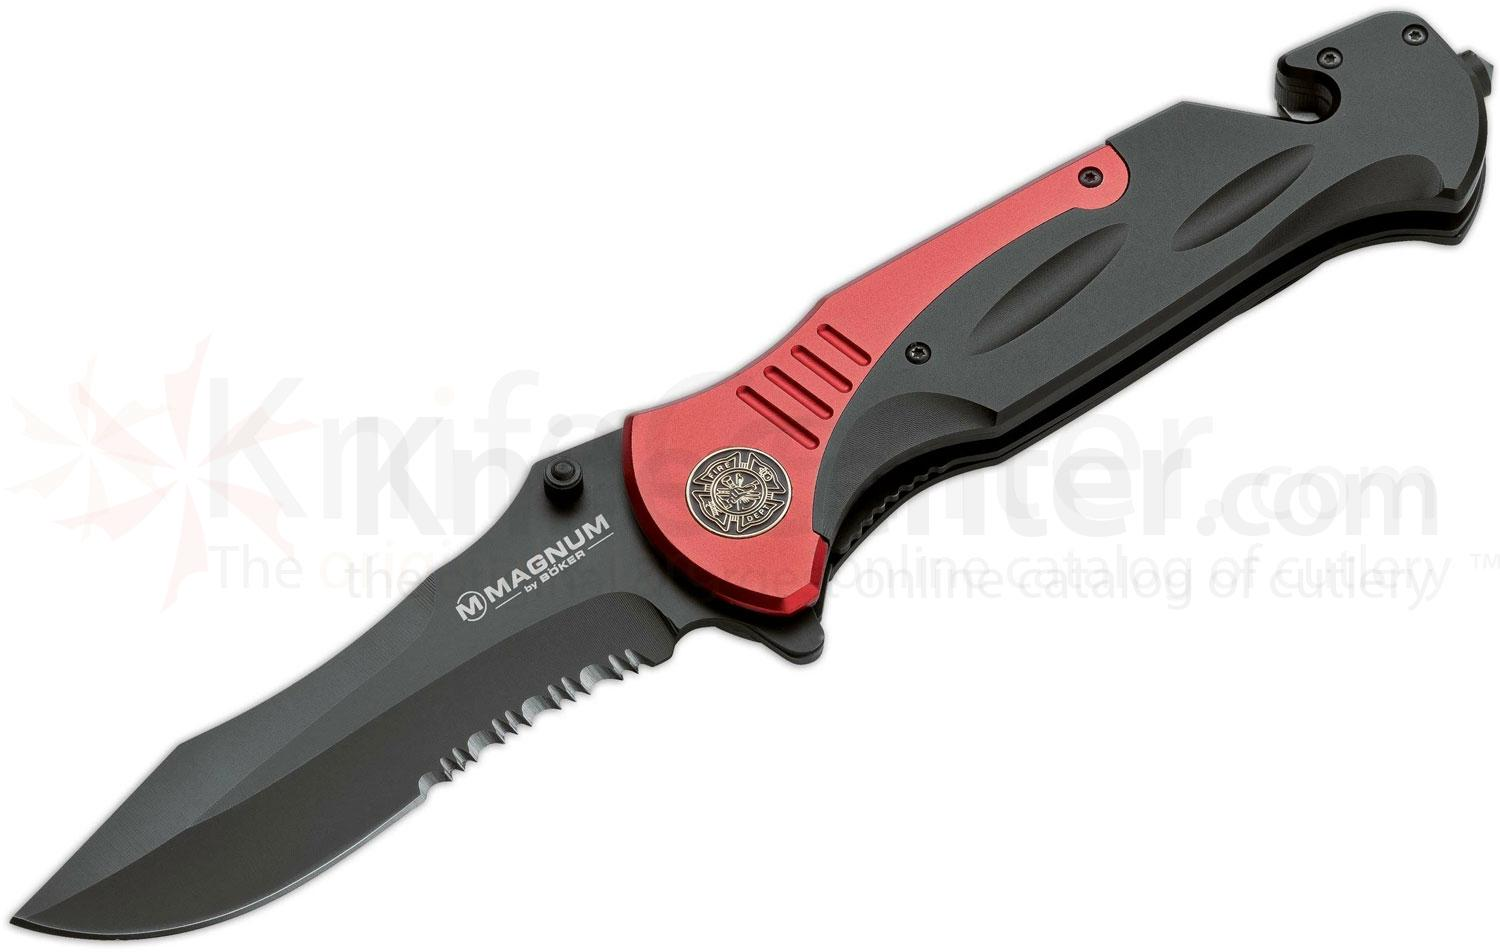 Boker Magnum Fire Chief Rescue Folding Knife 4-1/2 inch Black Combo Blade, Black and Red Handles